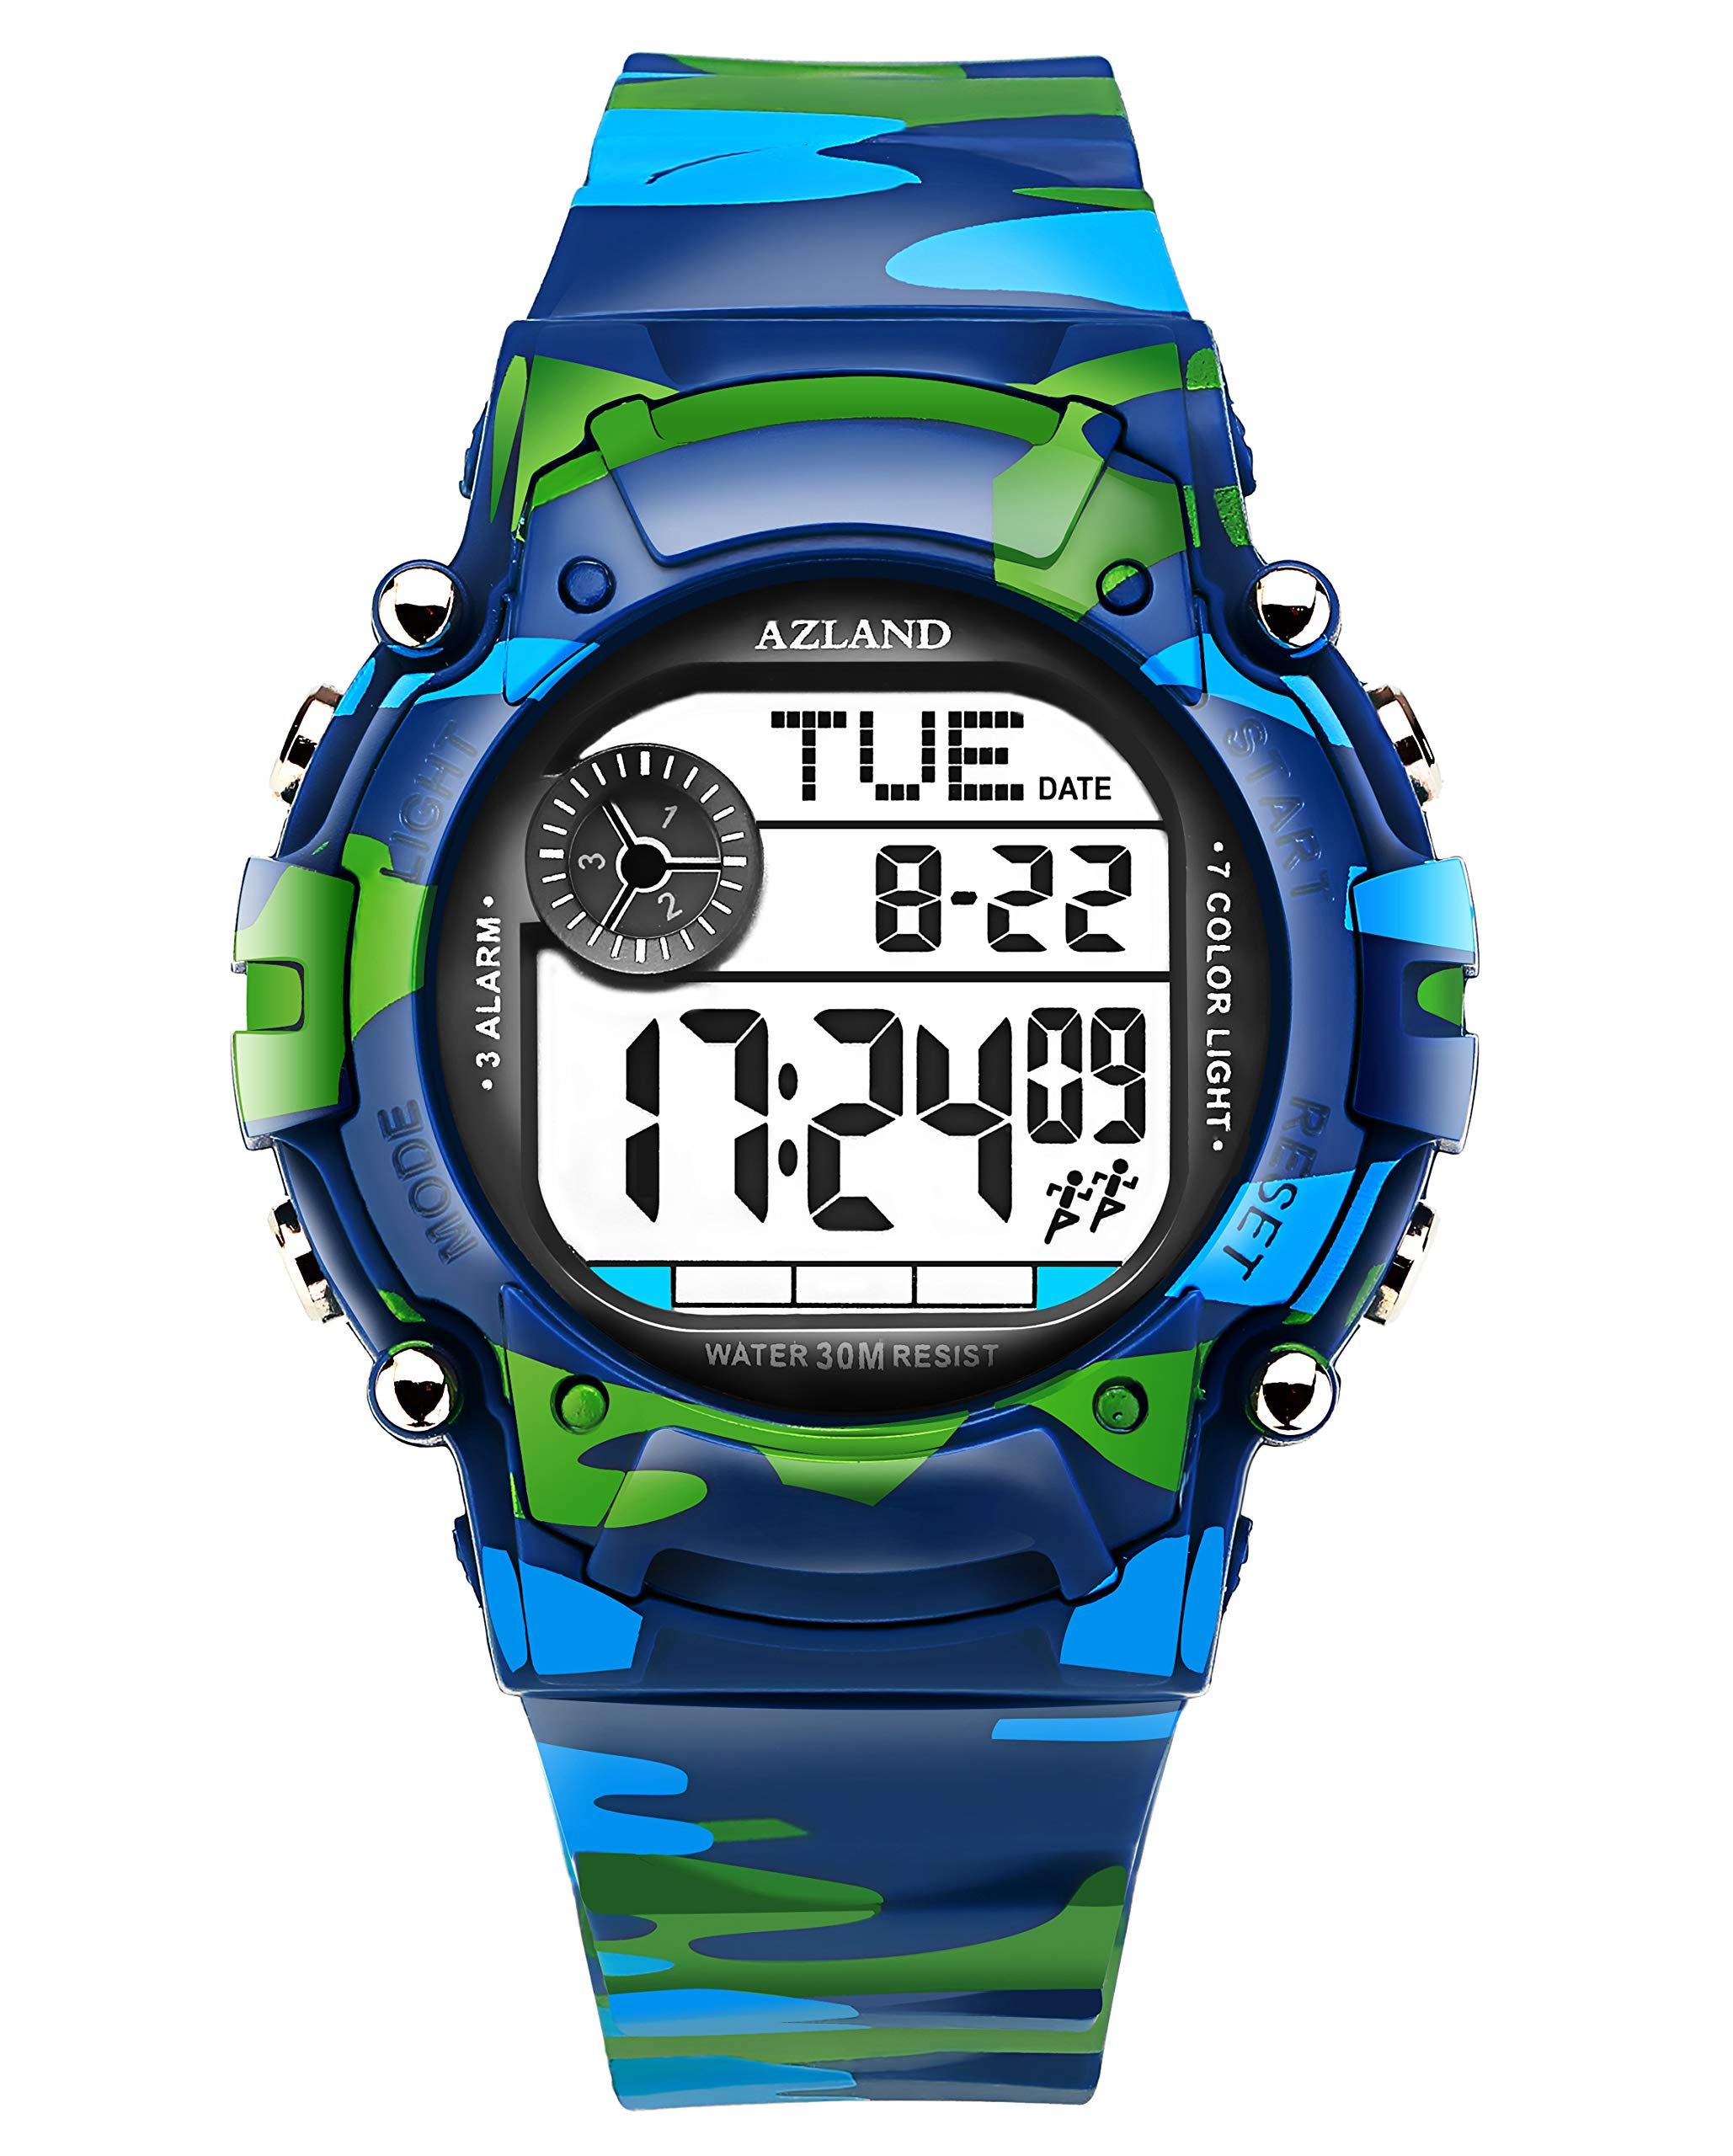 AZLAND 7 Colors Flashing, Multiple Alarms Reminder Sports Kids Wristwatch Waterproof Boys Girls Digital Watches Camo, for Age 4-12 by AZLAND